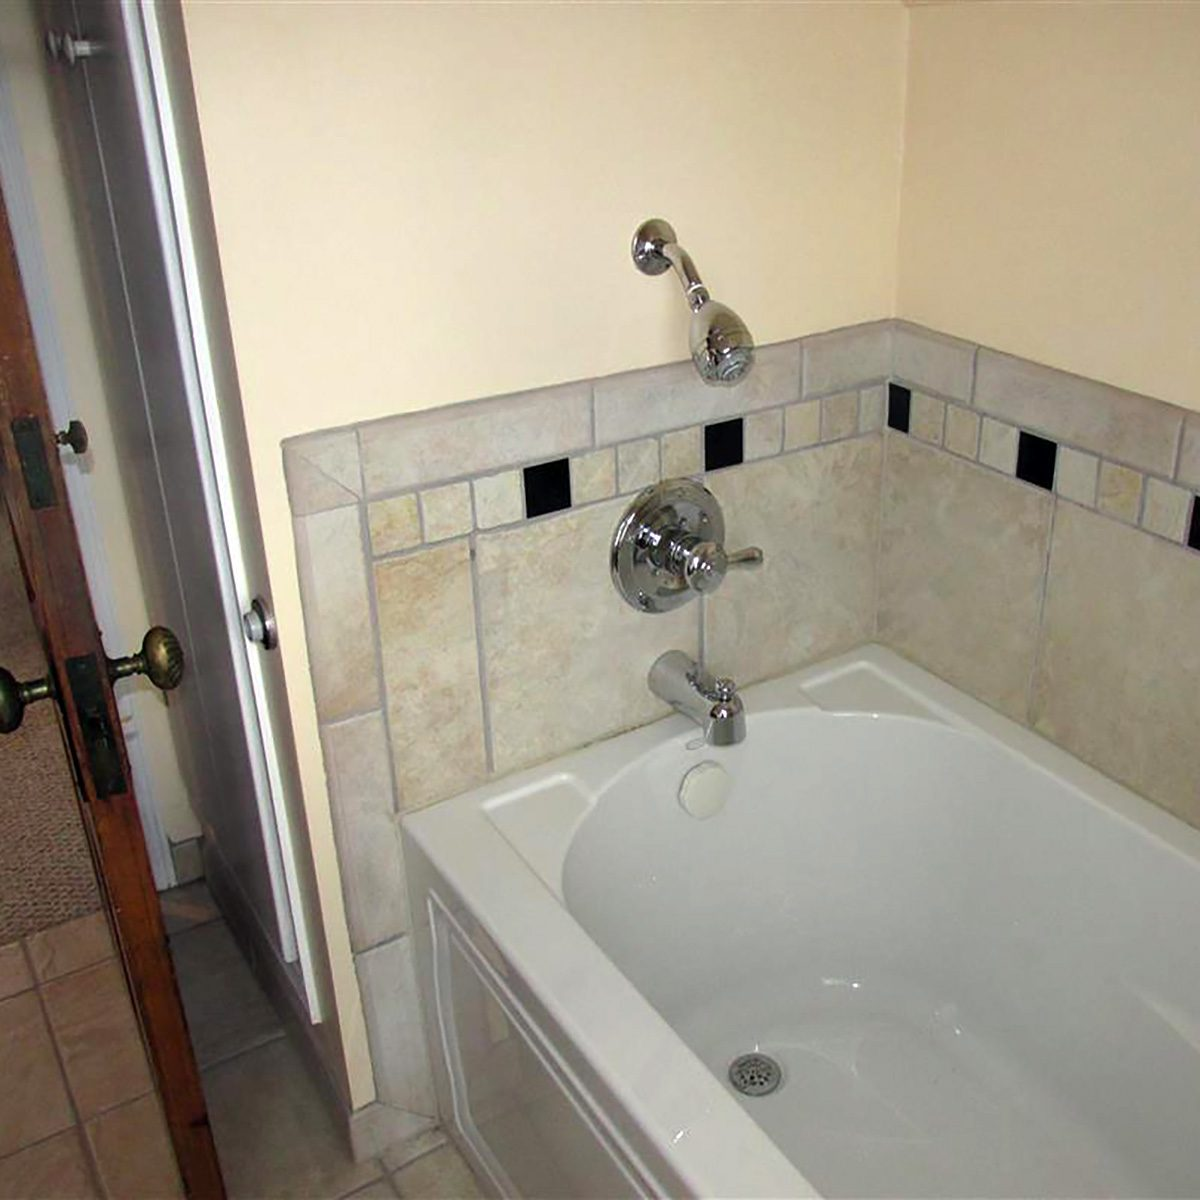 A shower placed way too low   Construction Pro Tips